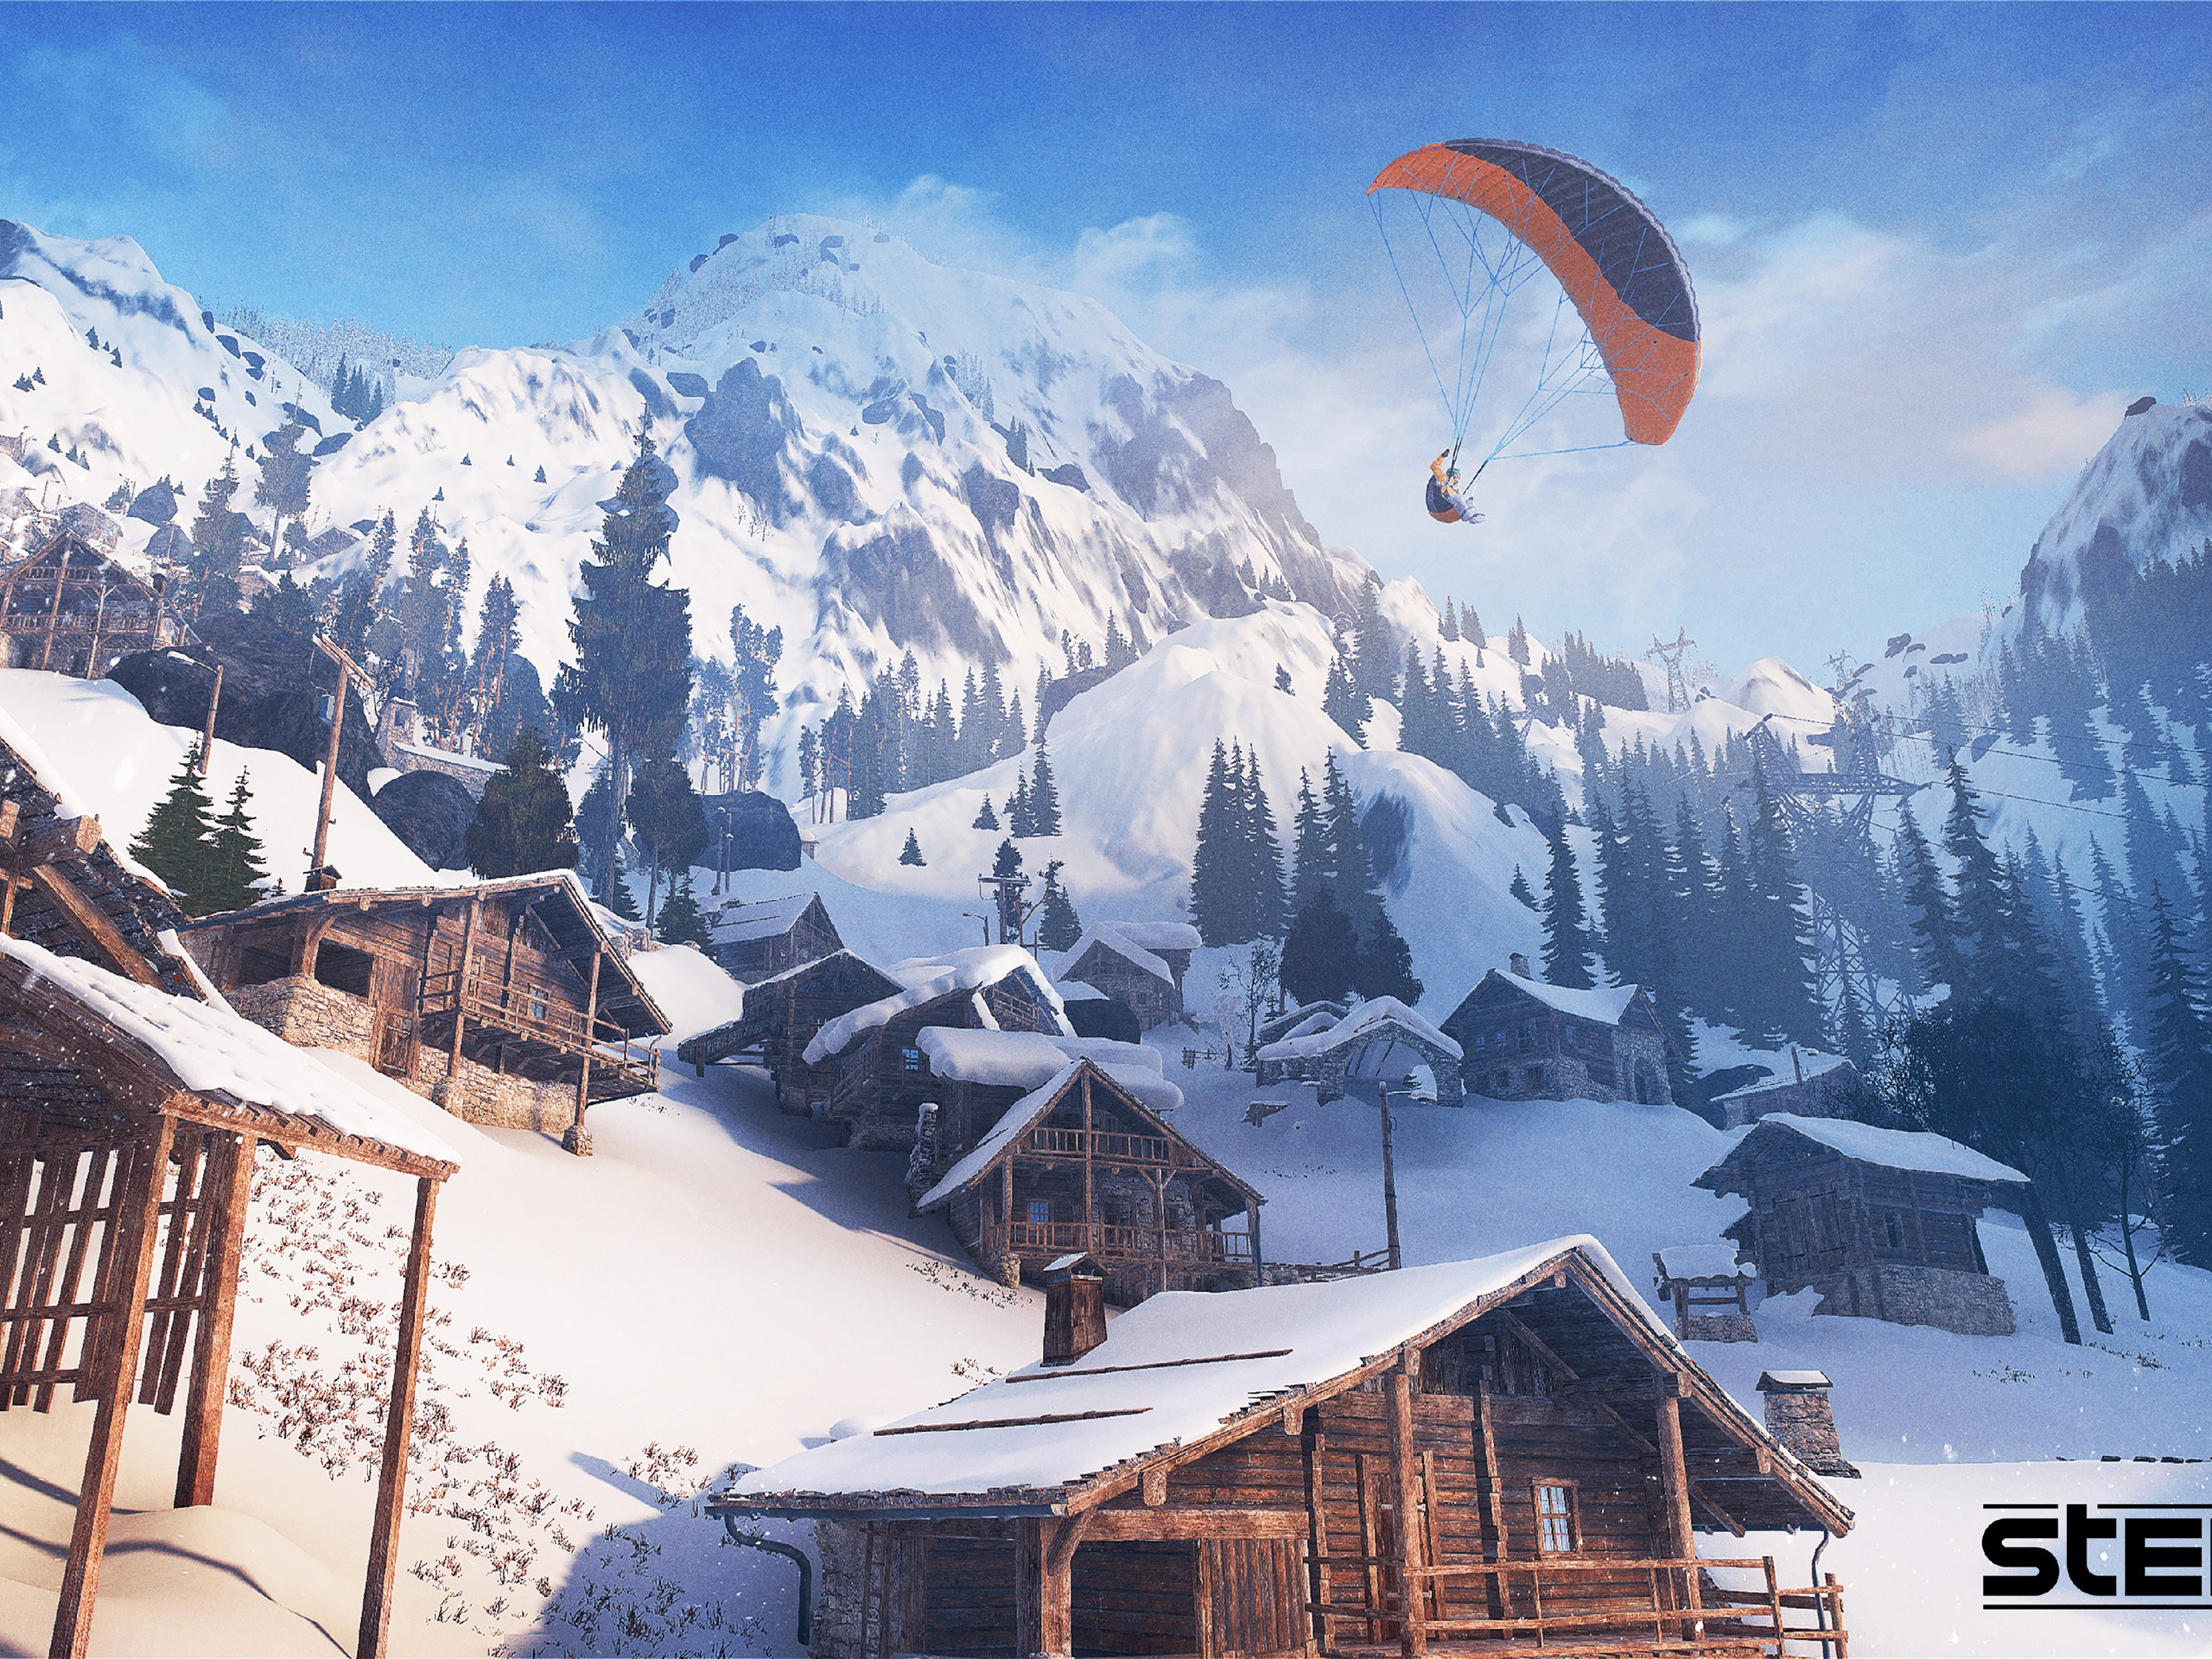 Steep Game 4K Ultra HD - 2560x1920 wallpaper download